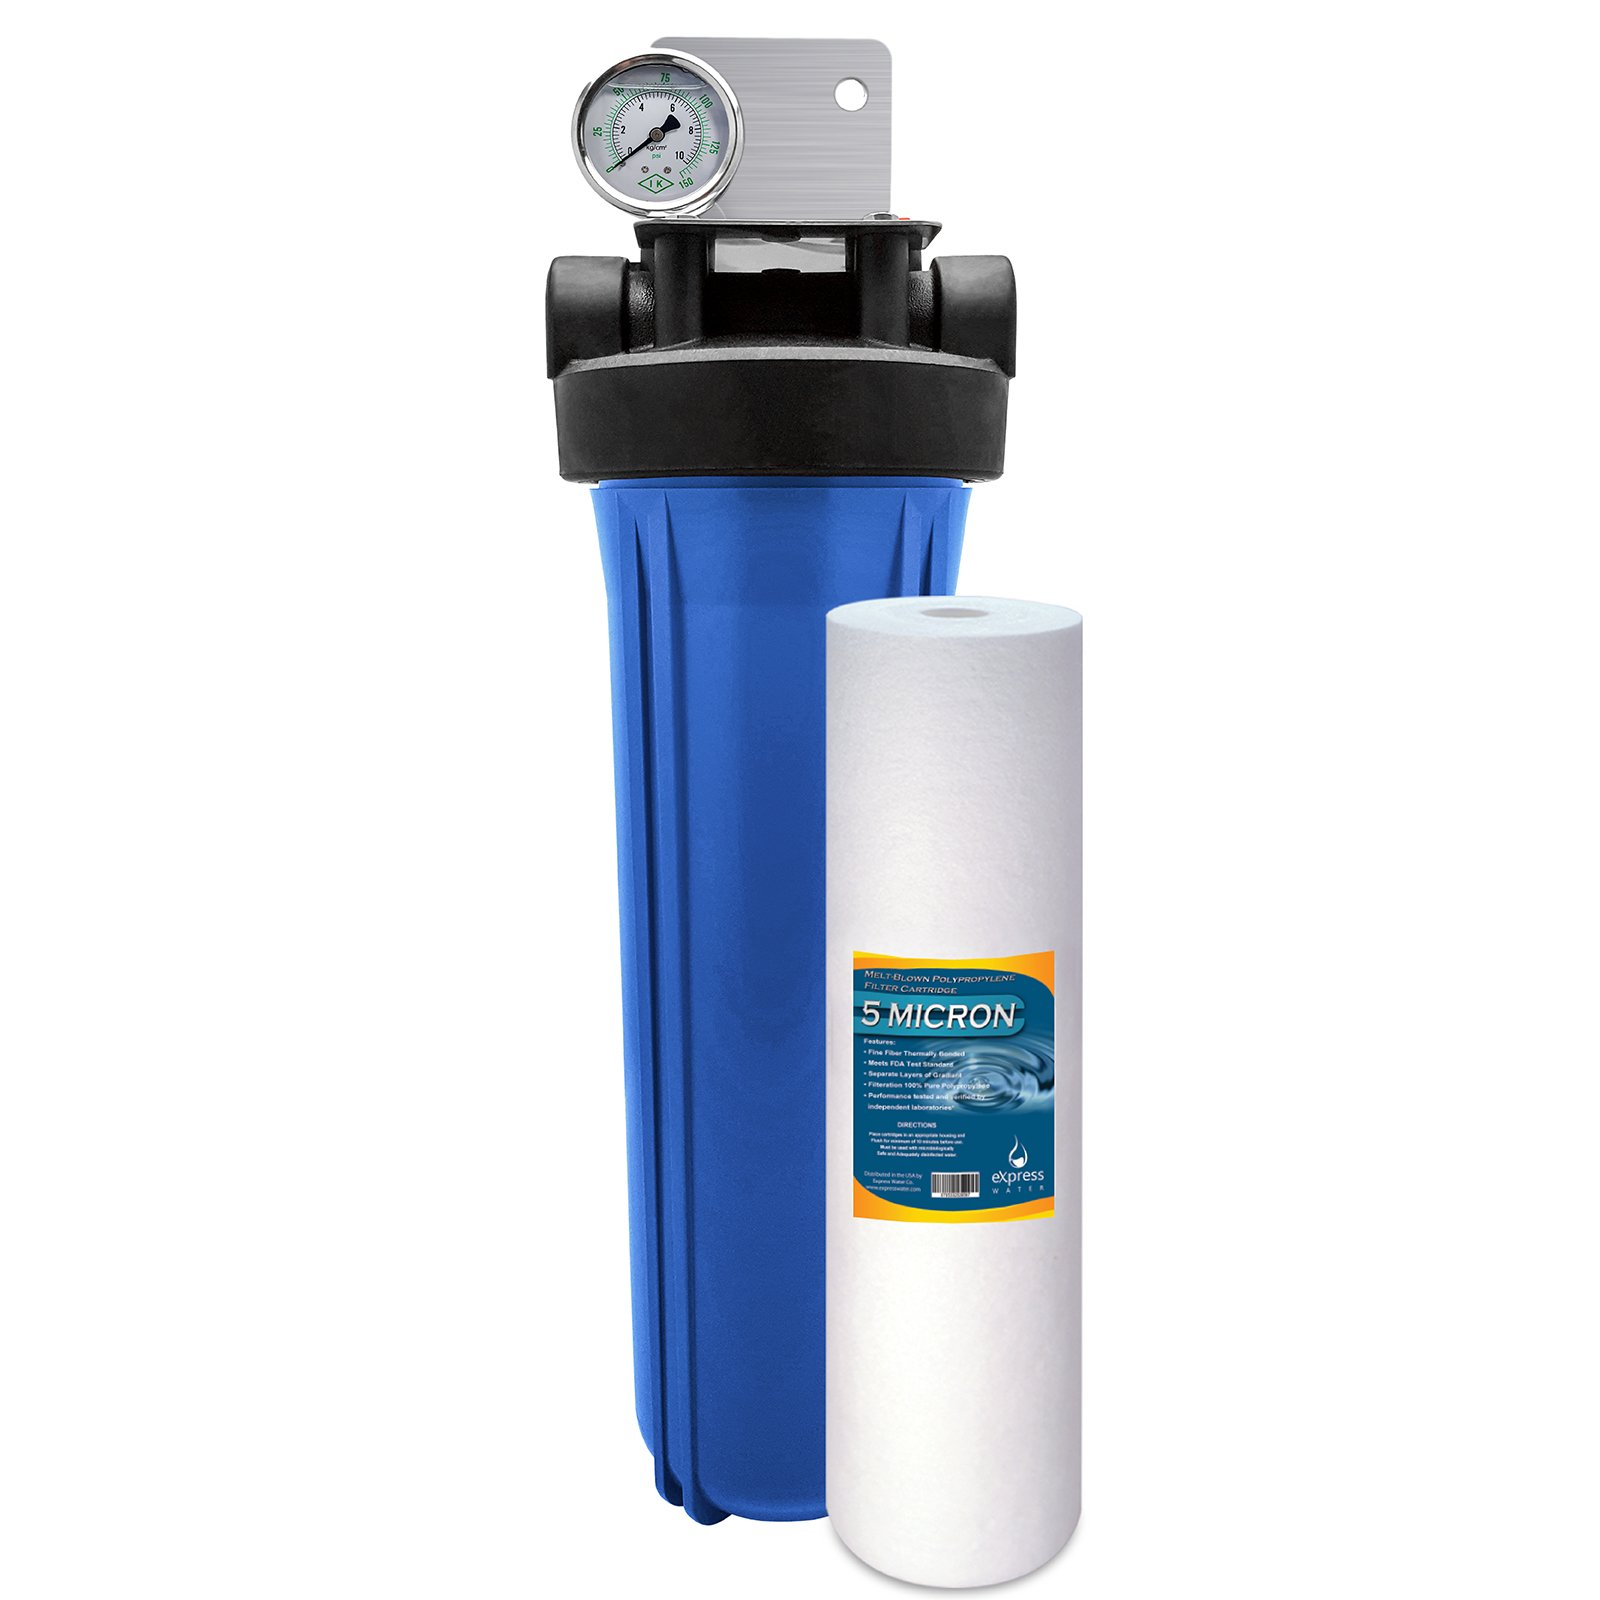 "Express Water Whole House Water Filter – Home Water Filtration System – Sediment Filter – includes Pressure Gauge, Easy Release, and 1"" Inch Connections"